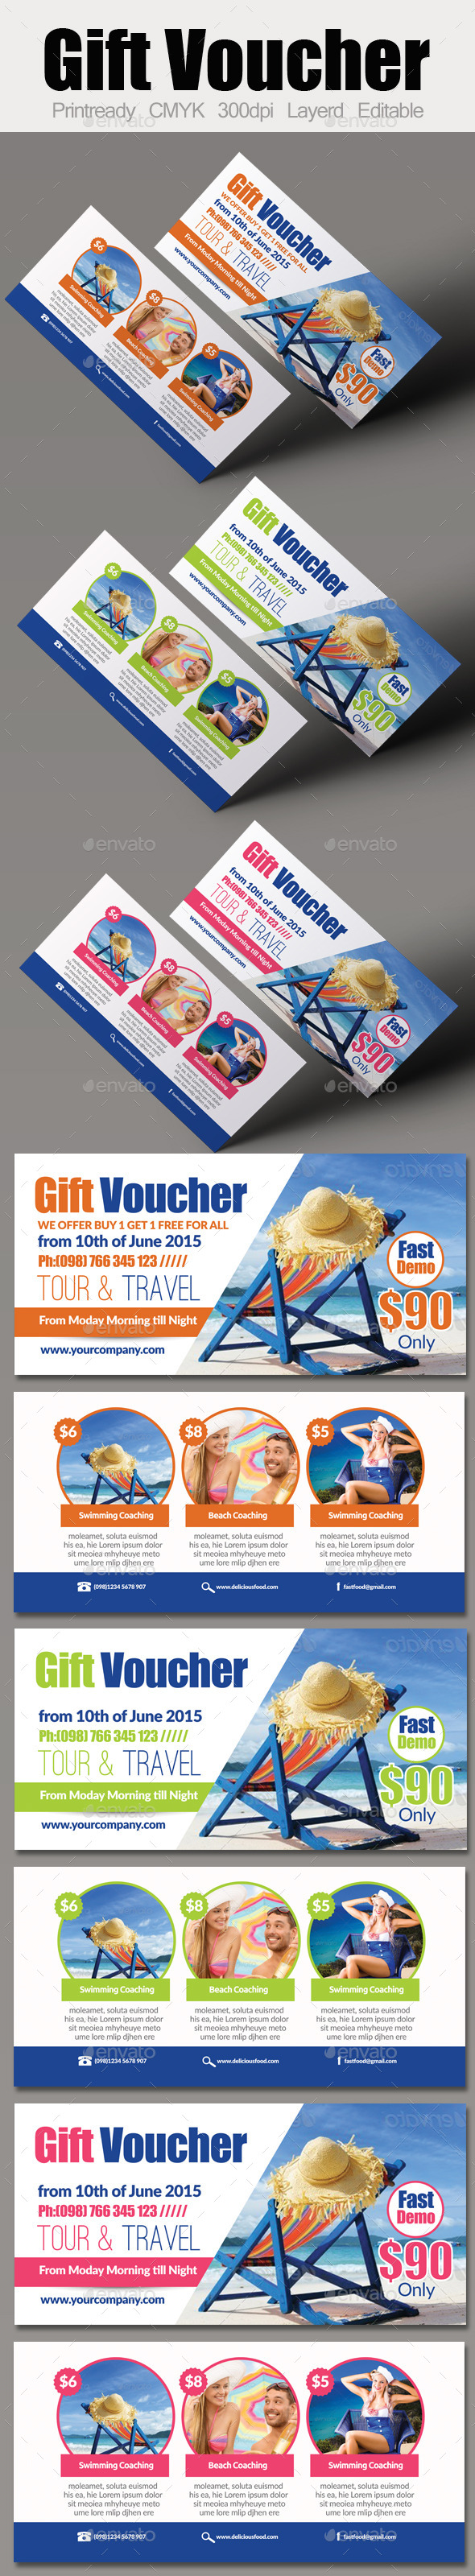 Tour Travel Gift Voucher - Cards & Invites Print Templates